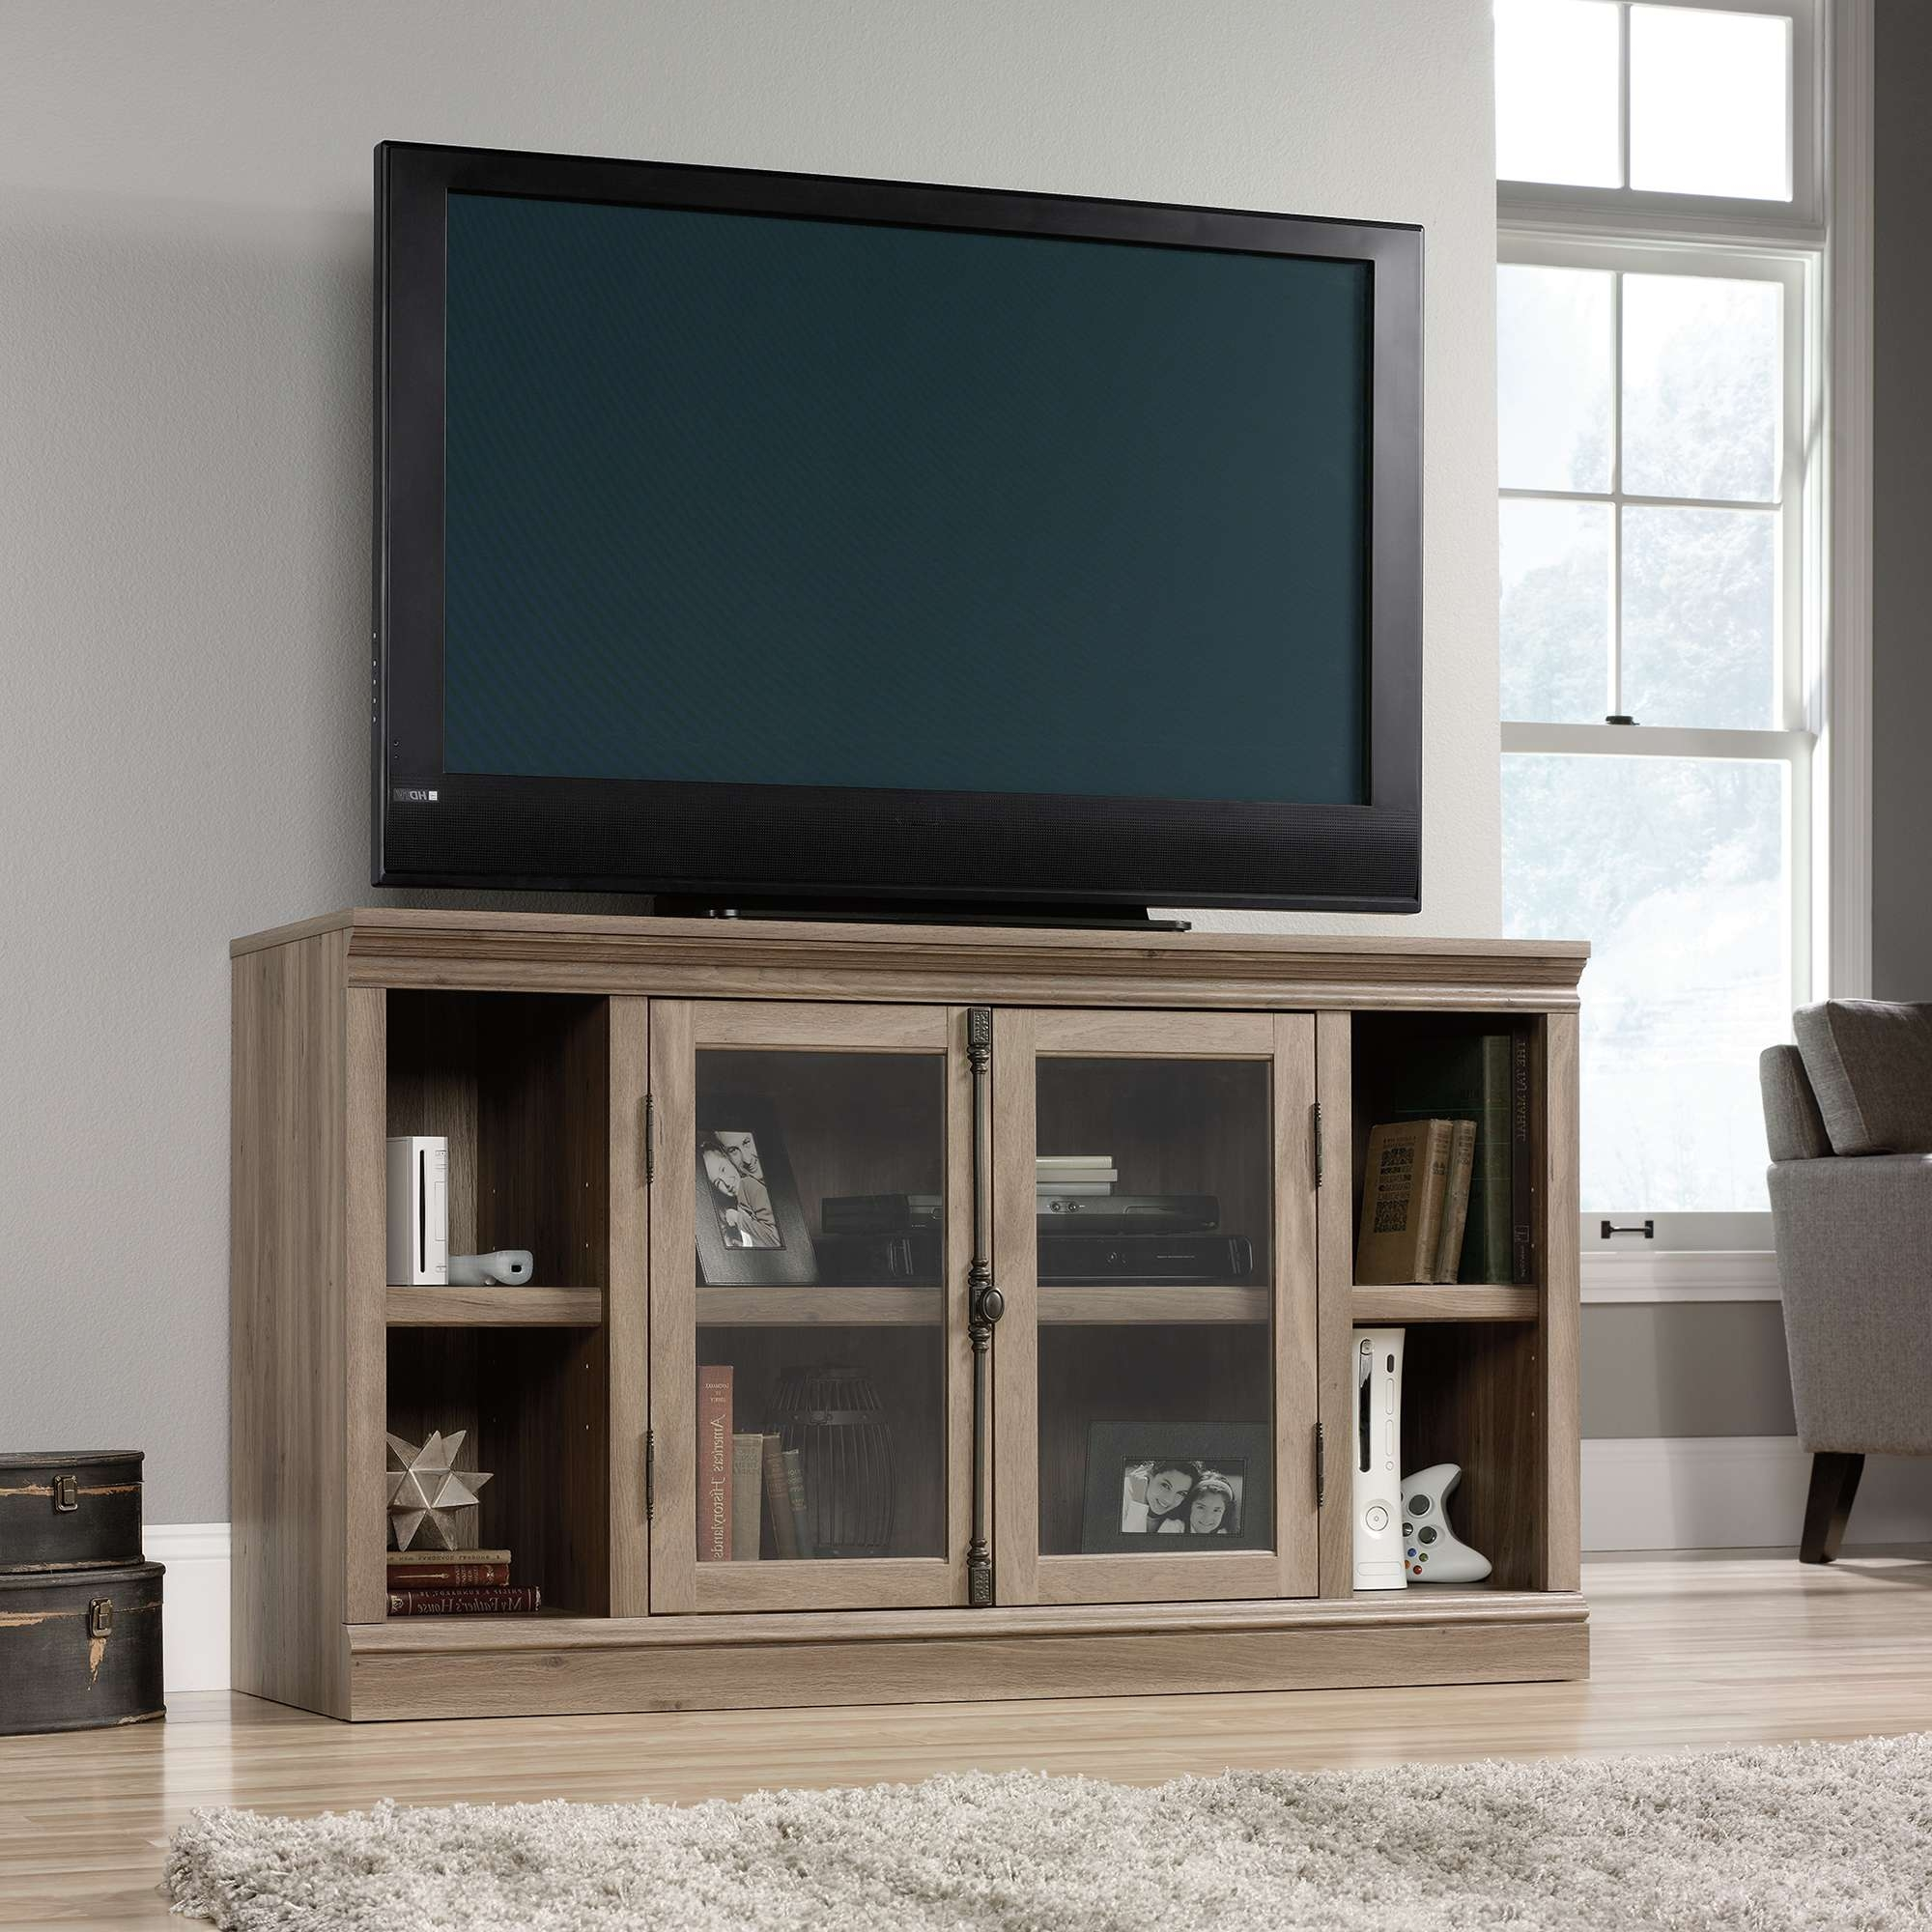 Barrister Lane | Entertainment Credenza | 416488 | Sauder With Regard To Lane Tv Stands (View 4 of 15)